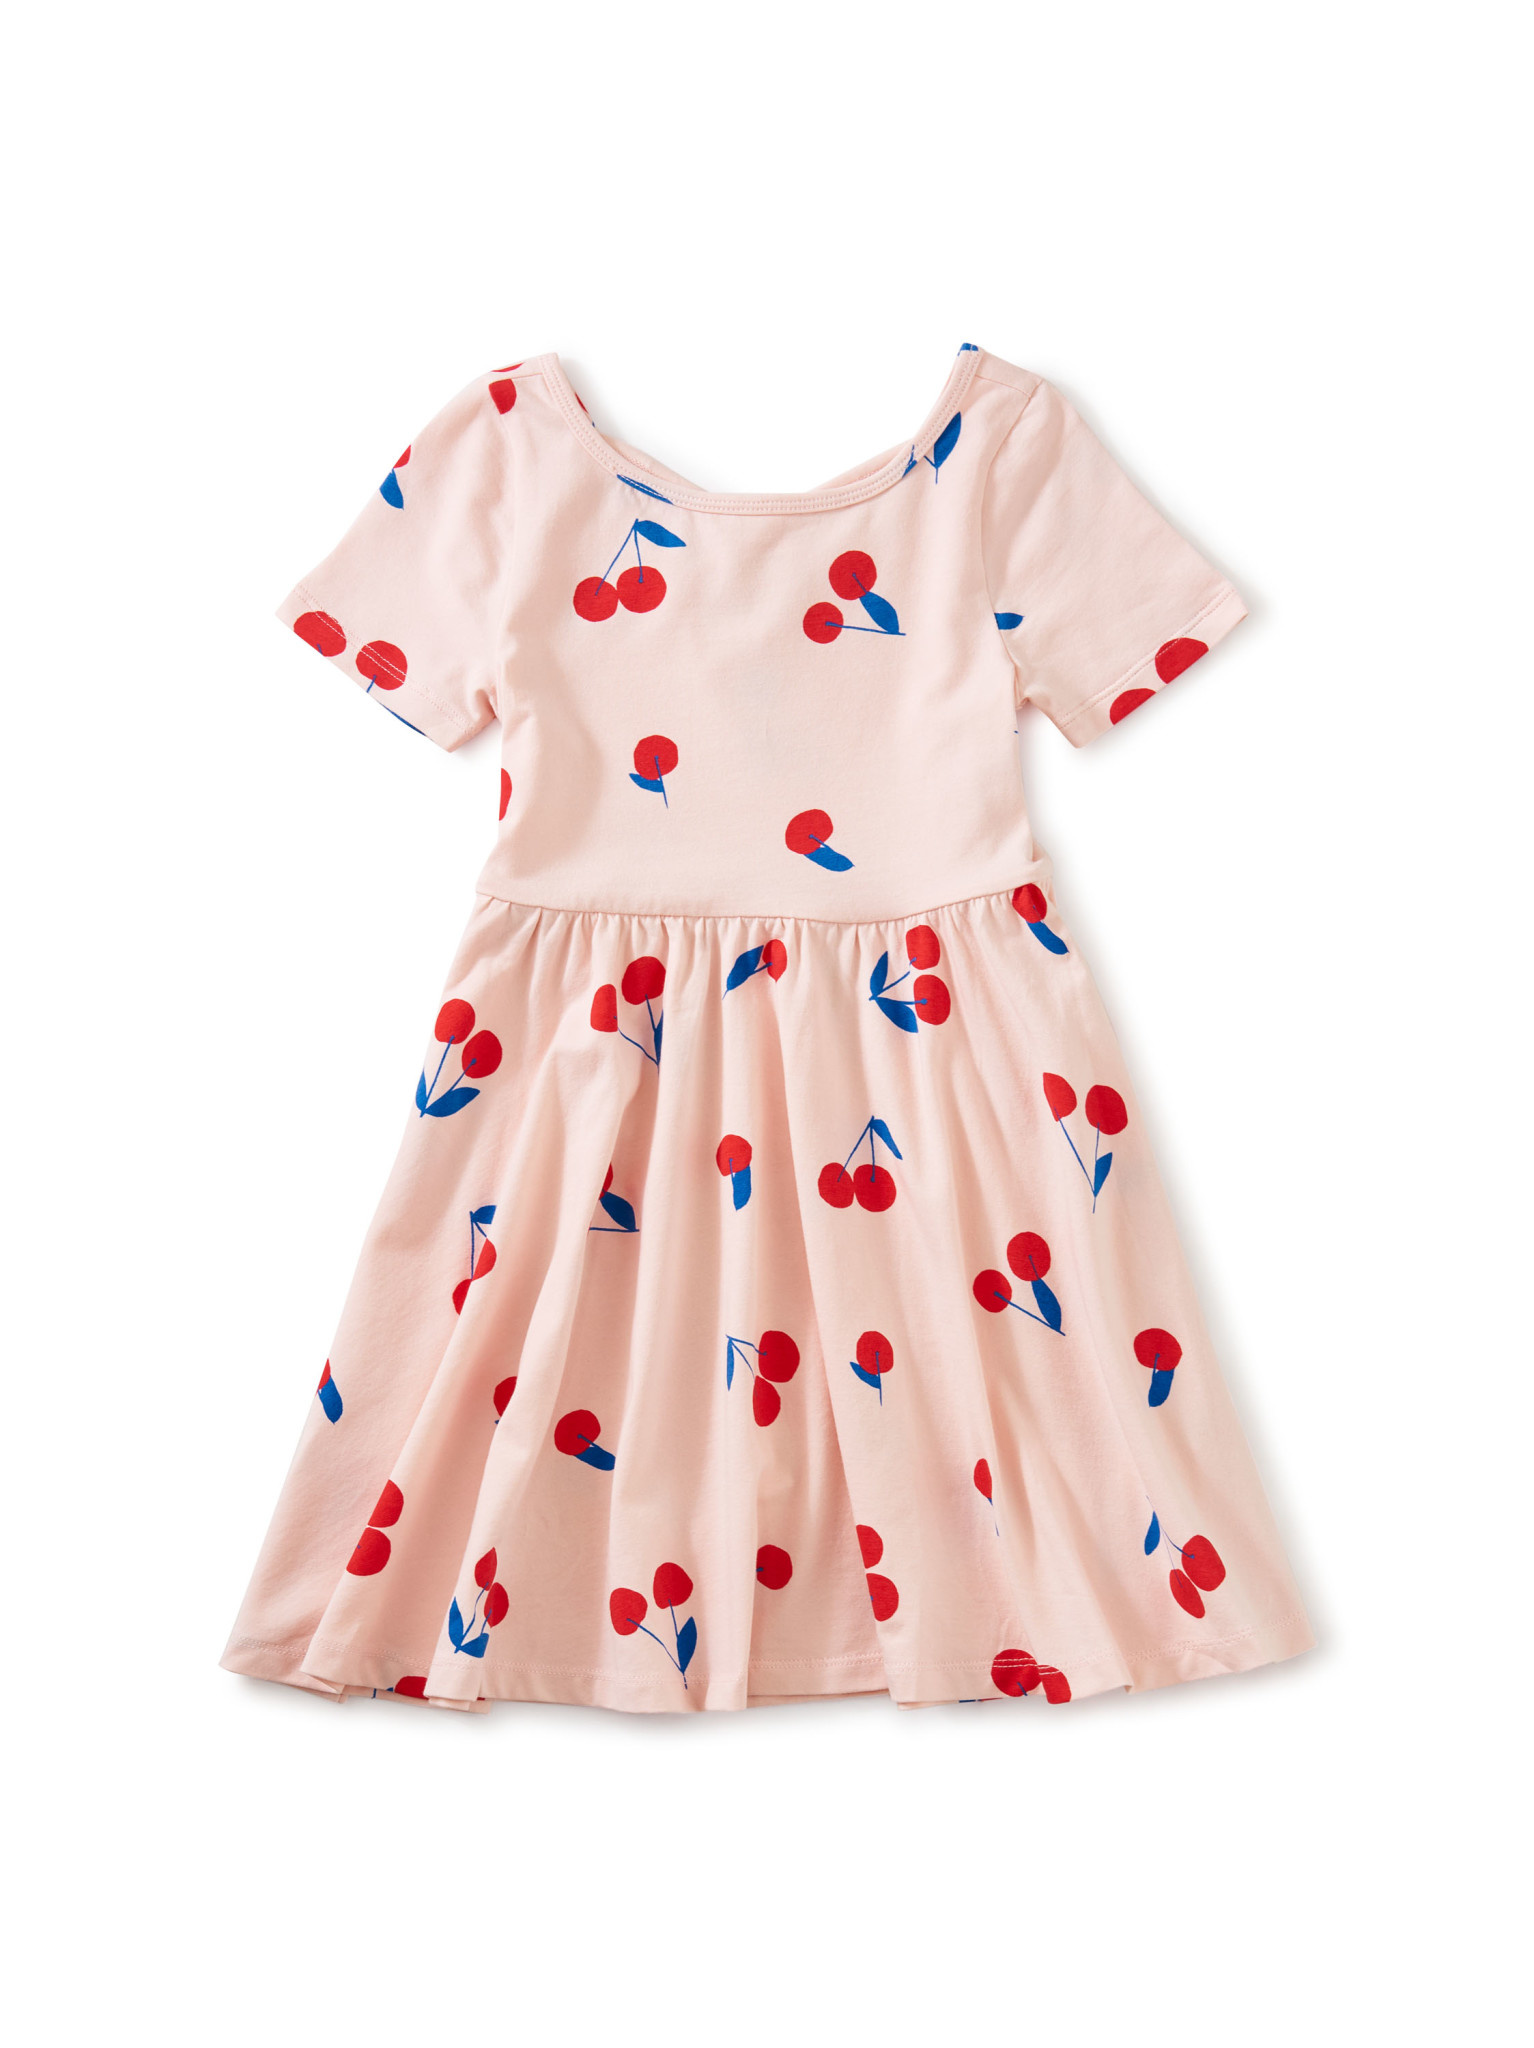 Tea Collection Ballet Dress - Ginja Cherry